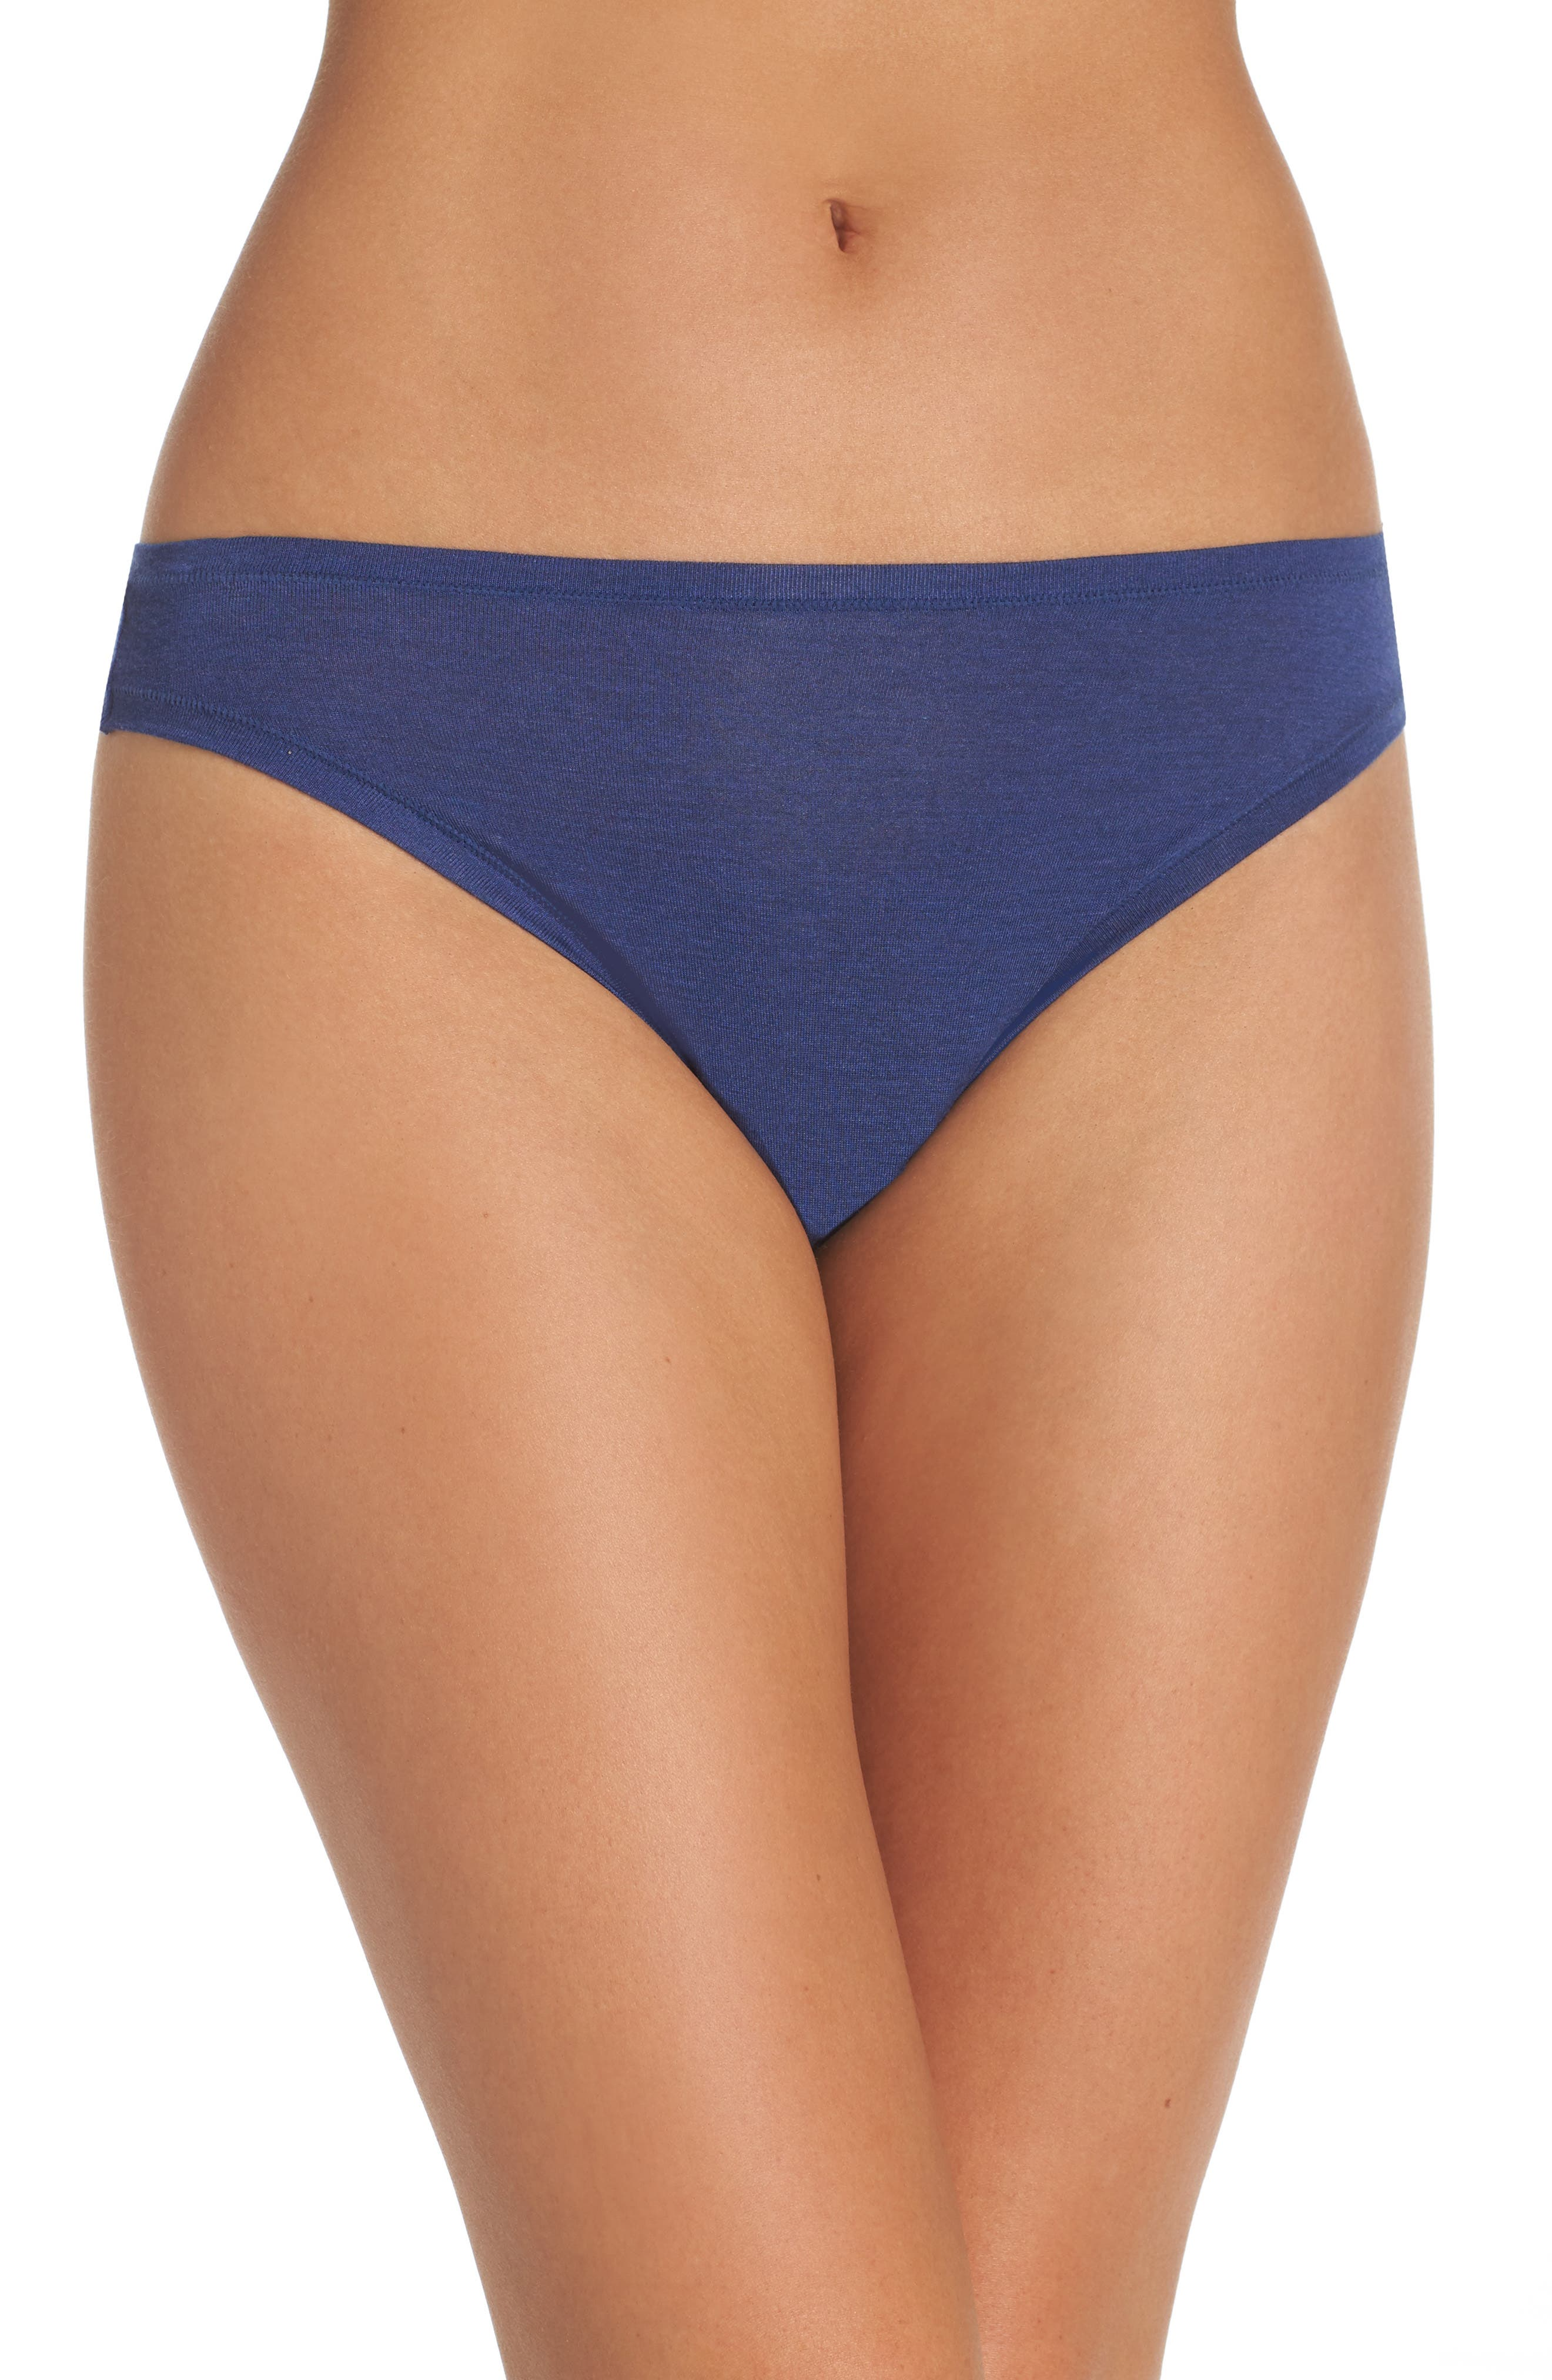 Bliss Essence Thong,                             Main thumbnail 1, color,                             400